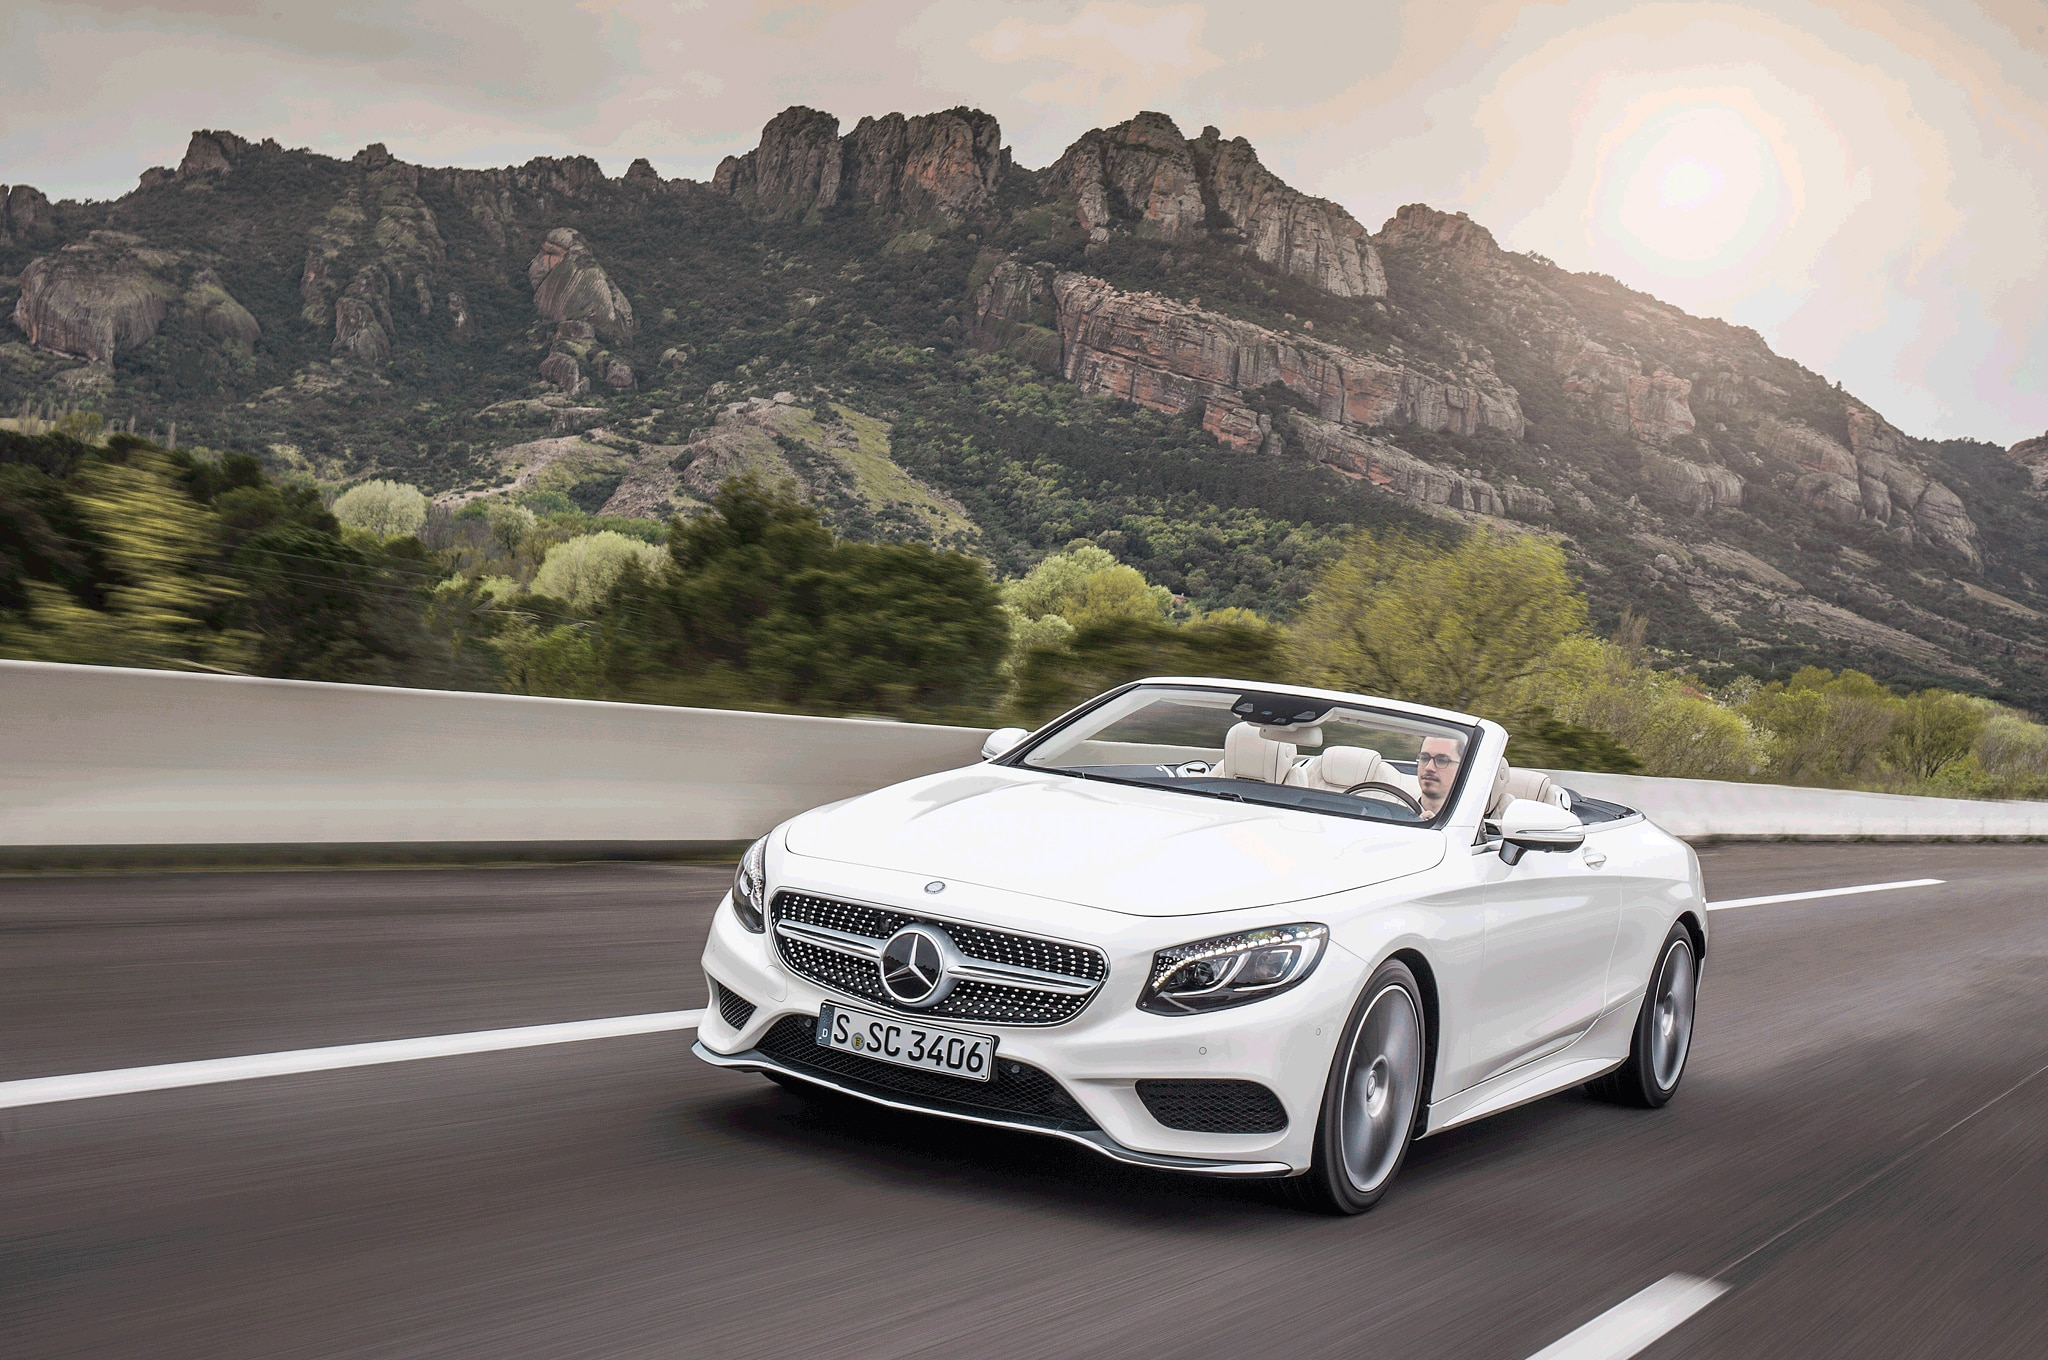 2017 mercedes benz s500 cabriolet review for Mercedes benz s550 convertible for sale